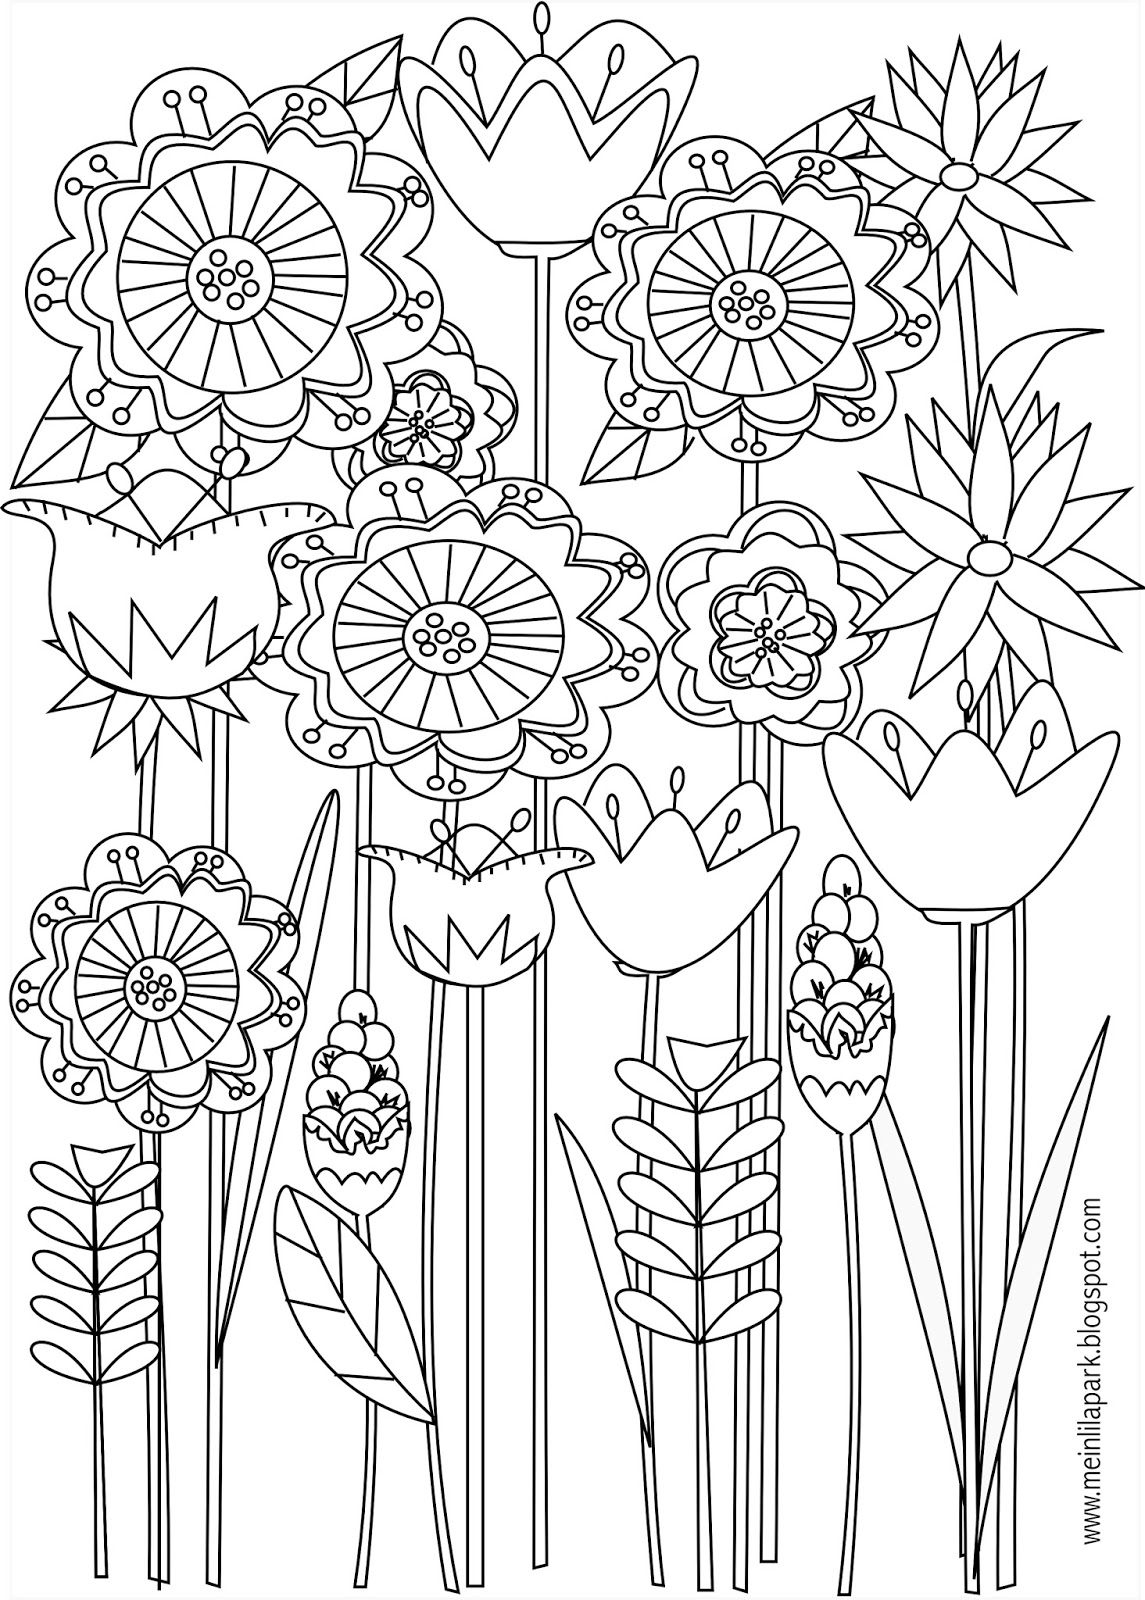 printable coloring pages for adults flowers get this realistic flowers coloring pages for adults 7dg40 pages adults flowers printable coloring for